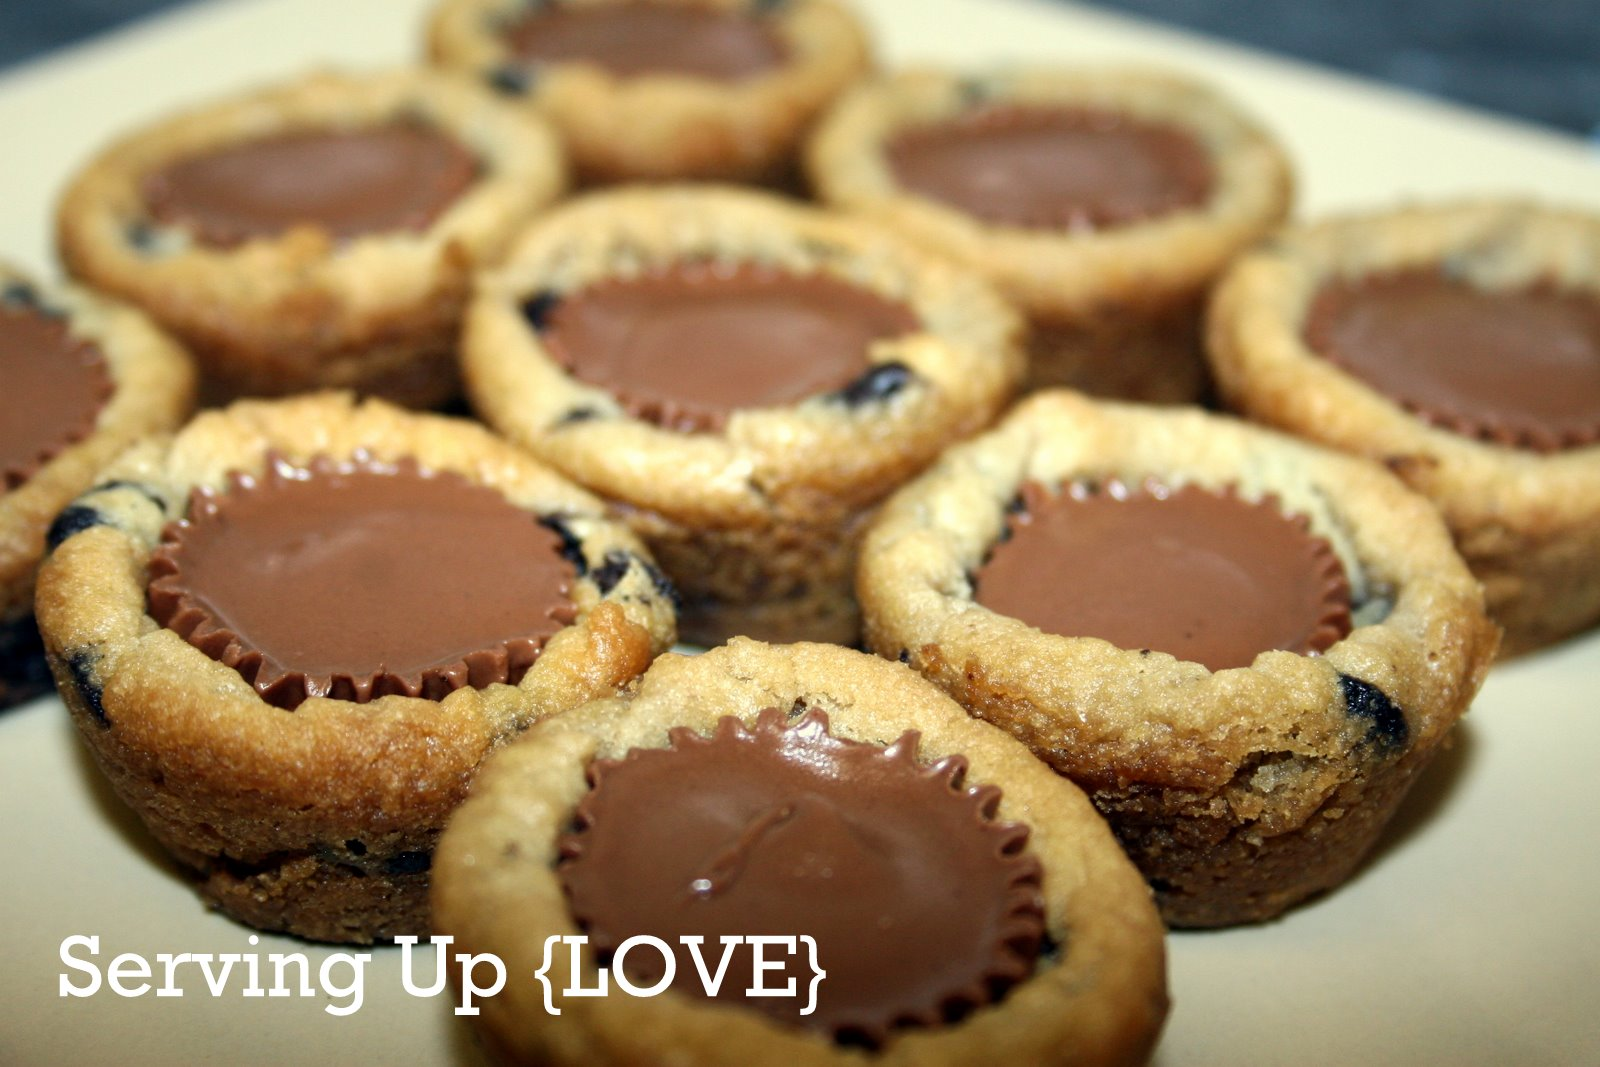 ... Kitchen: Serving Up {Cookies}: Chocolate Chip Peanut Butter Cup Bites